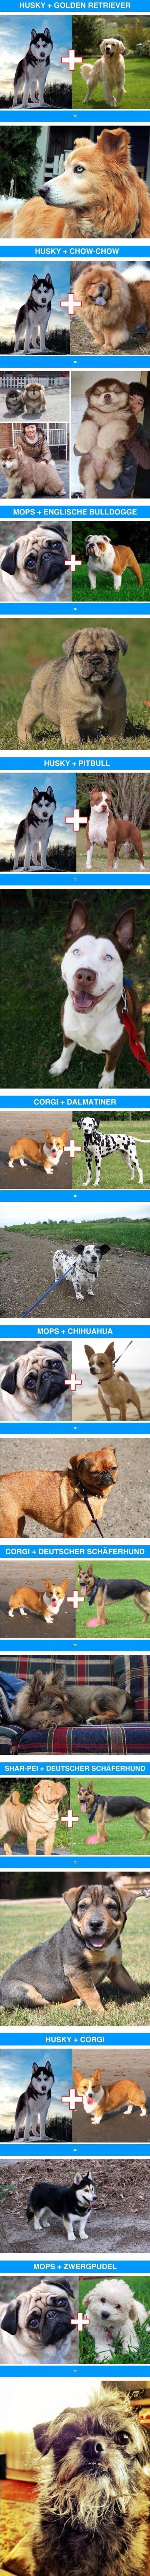 Cool dog cross breed combinations